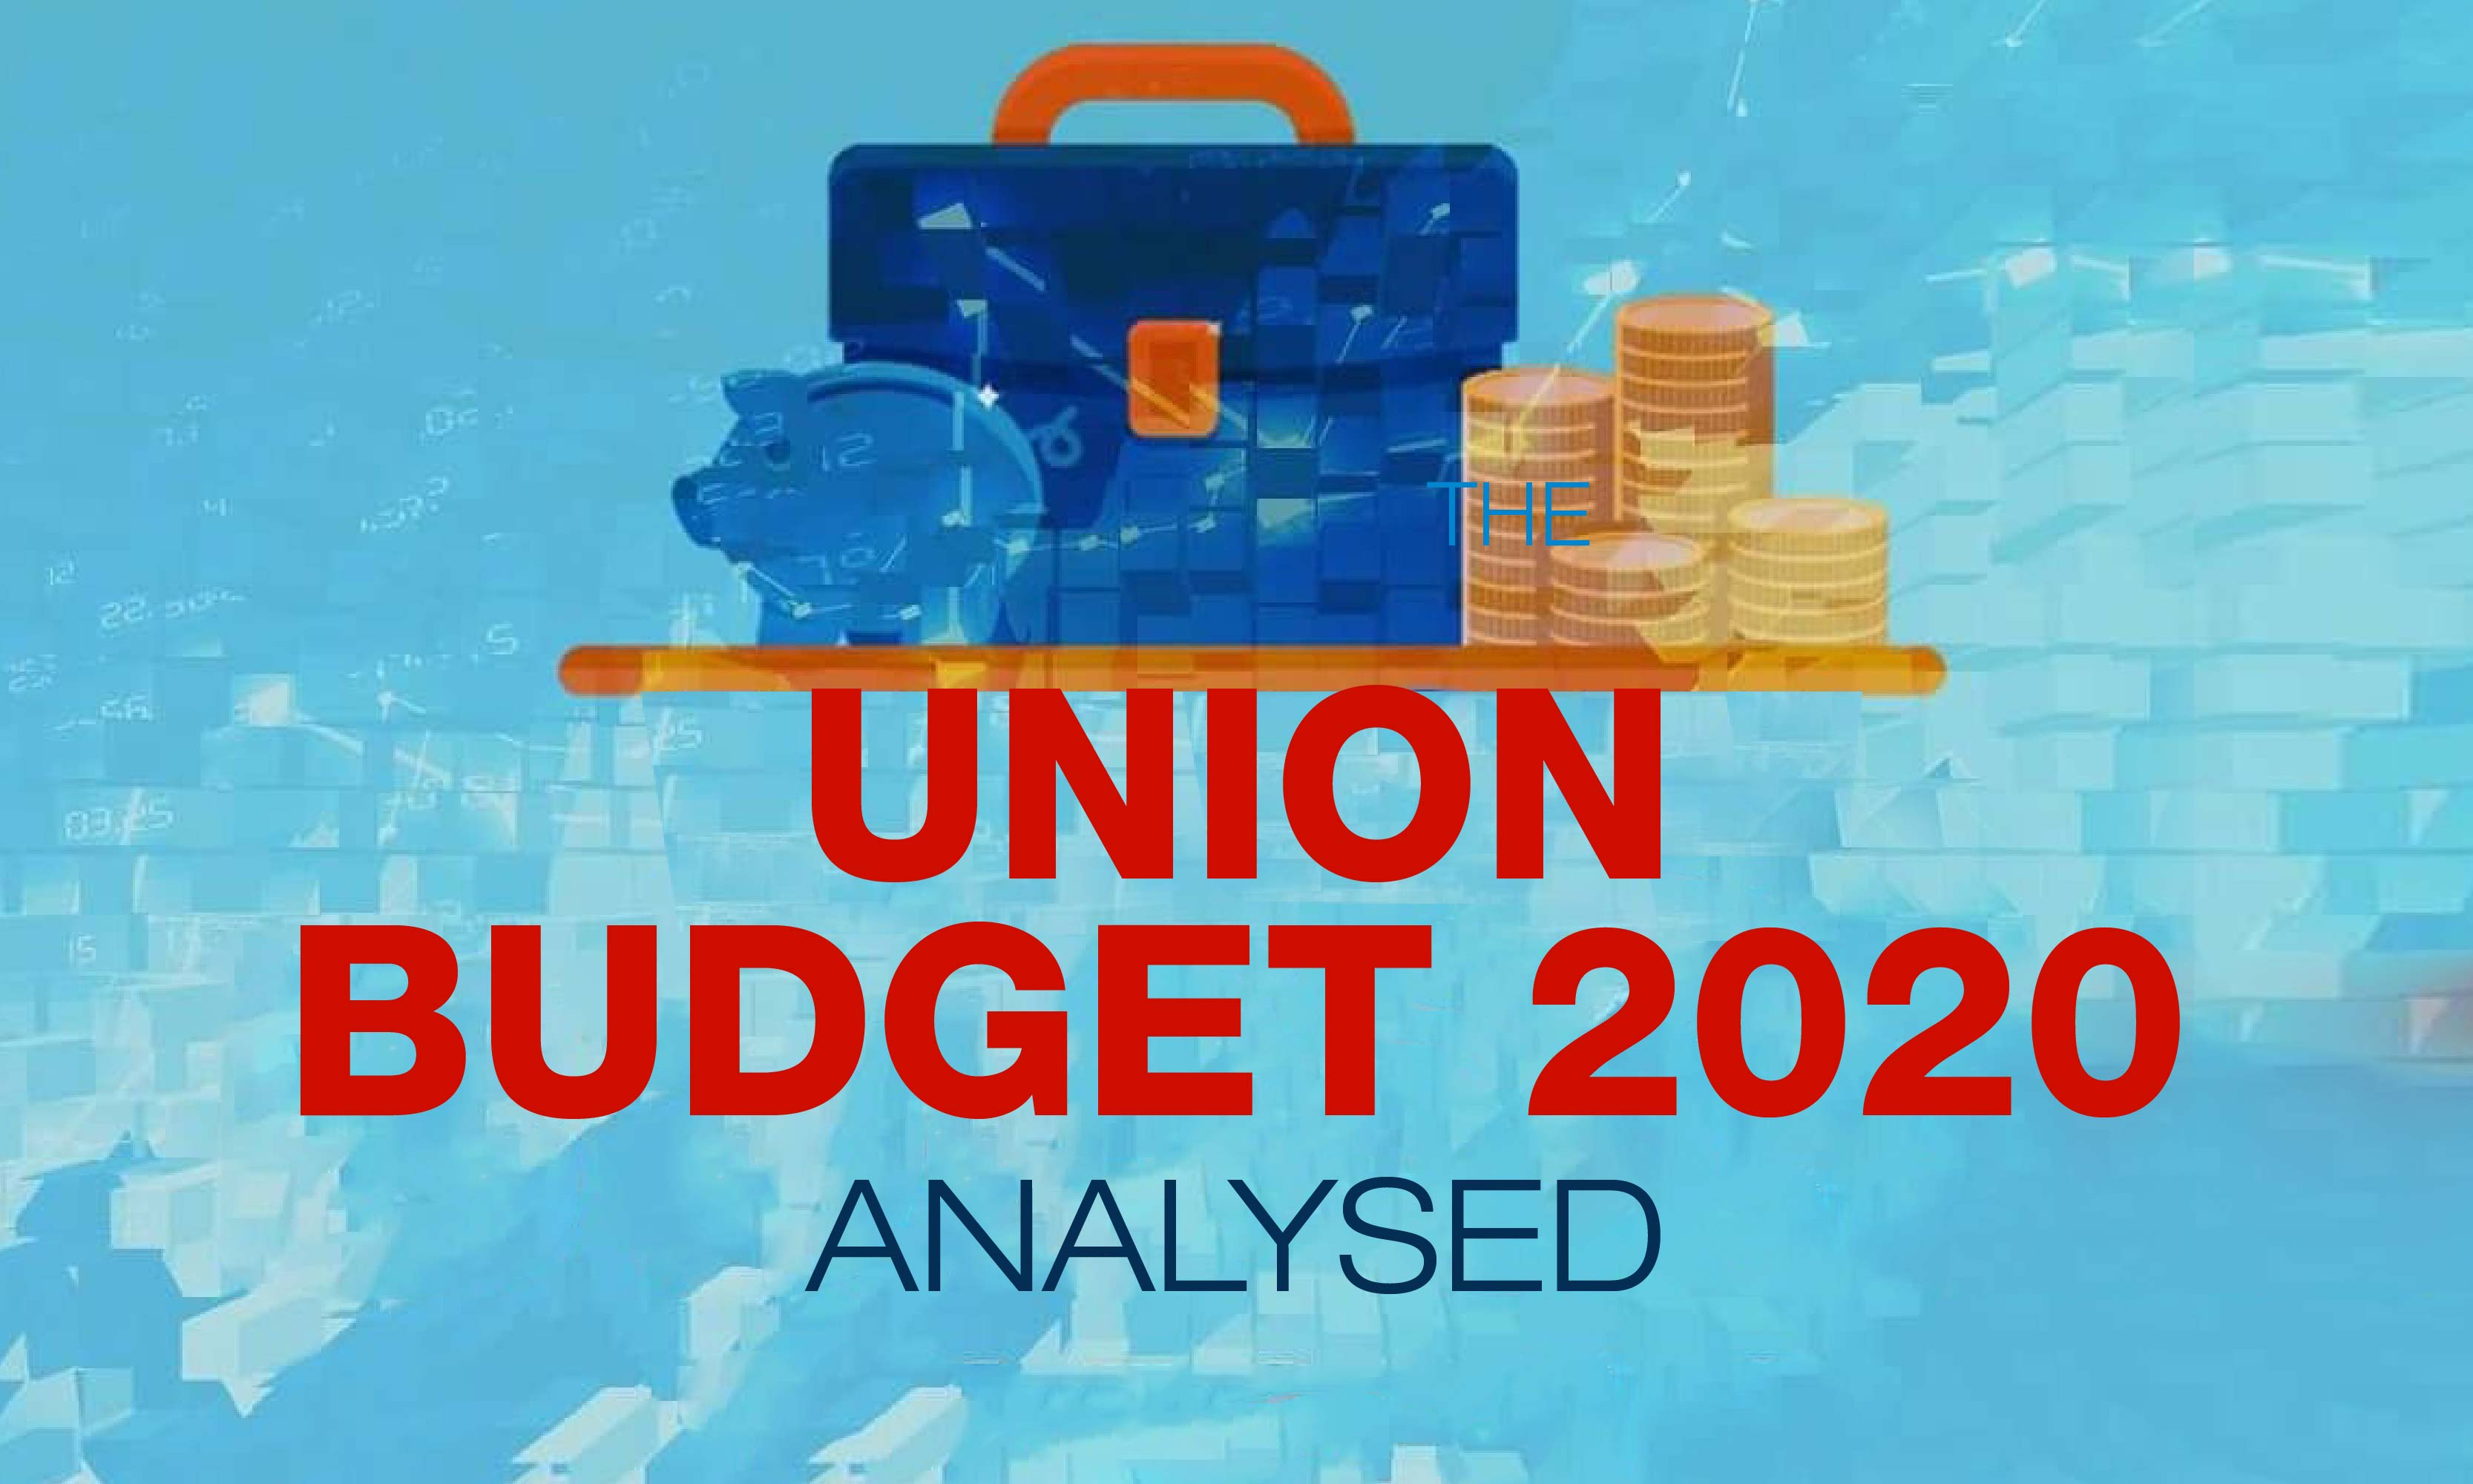 The Union Budget 2020 - Analysed